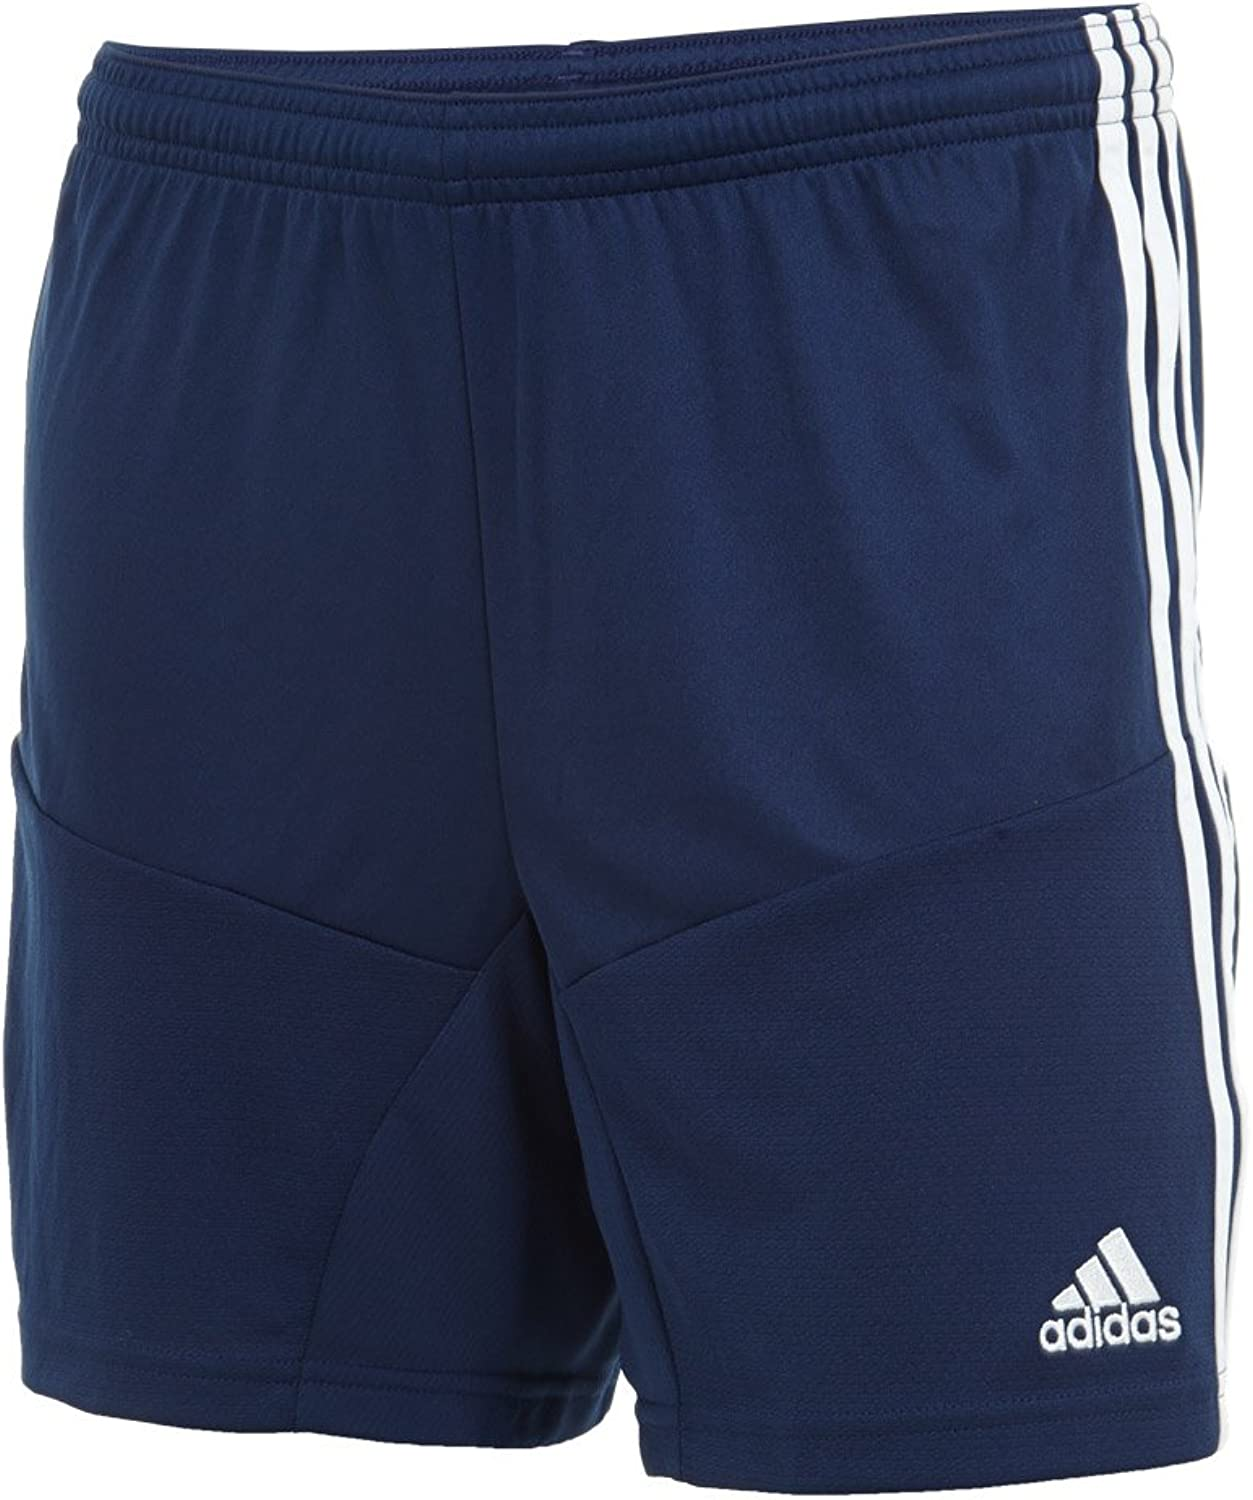 Adidas Campeon 13 Short Womens Style   Z20558